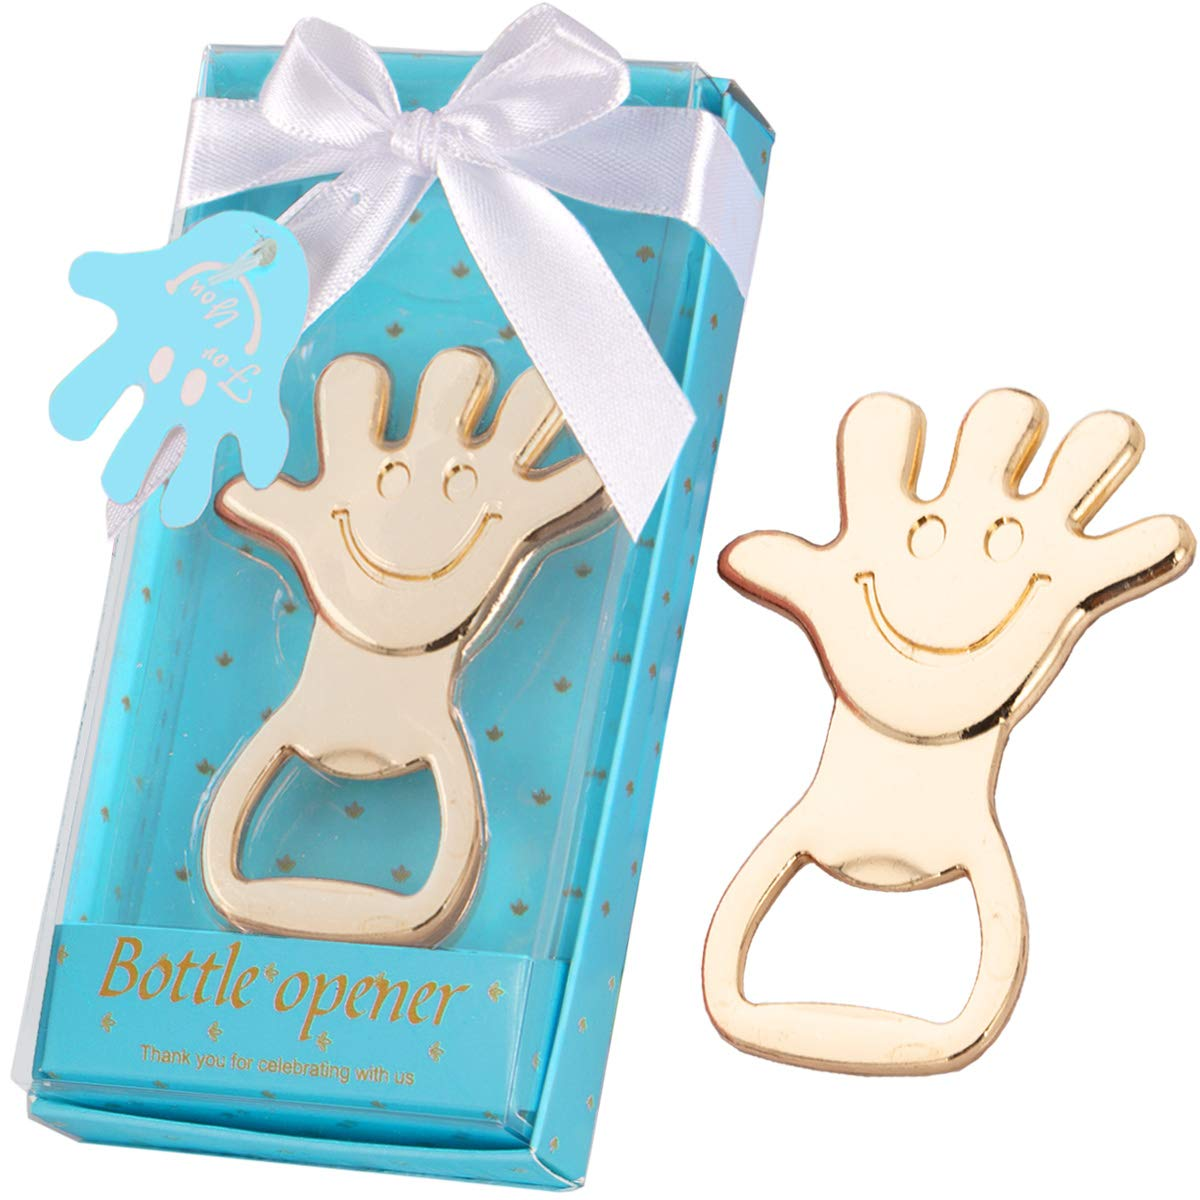 36 Pcs Baby Shower Favors for Girl Handprint Bottle Openers with Individual Gift Package, Baby Girl Newborn 1st 2nd 3rd Birthday Keepsake Creative Return Gifts Party Decoration (Handprint, Blue) by Morelegant